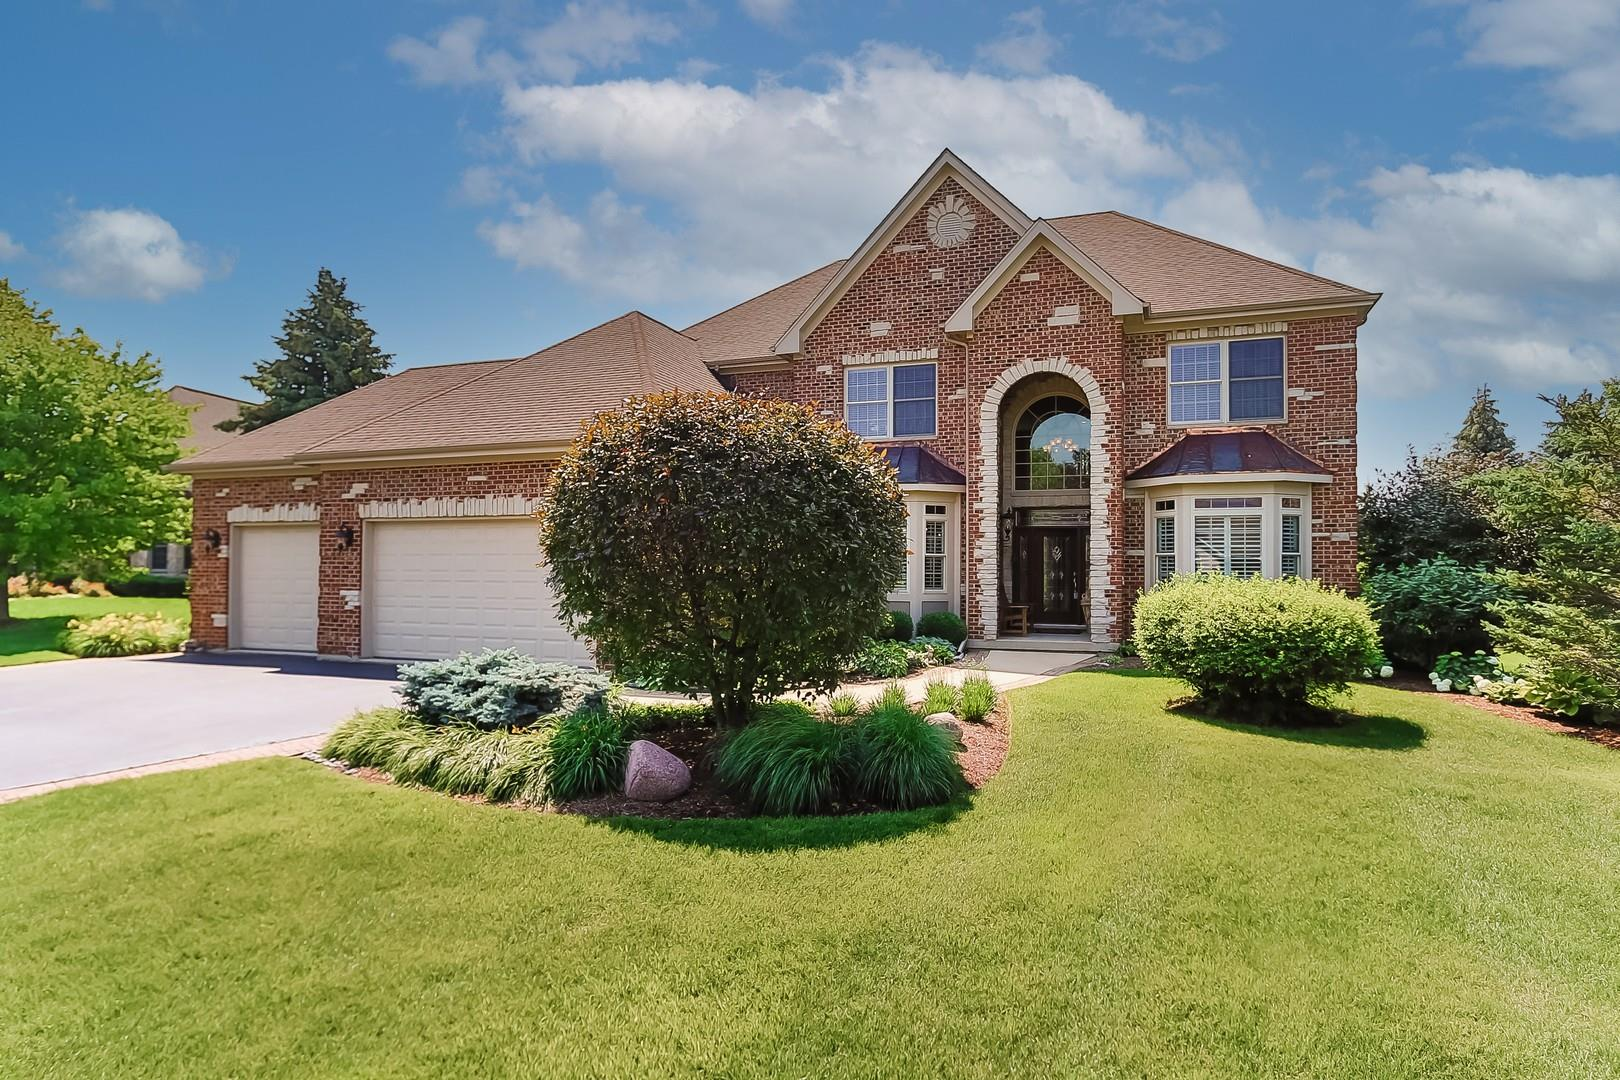 117 Boulder Drive, Lake in the Hills, IL 60156 - #: 11145922